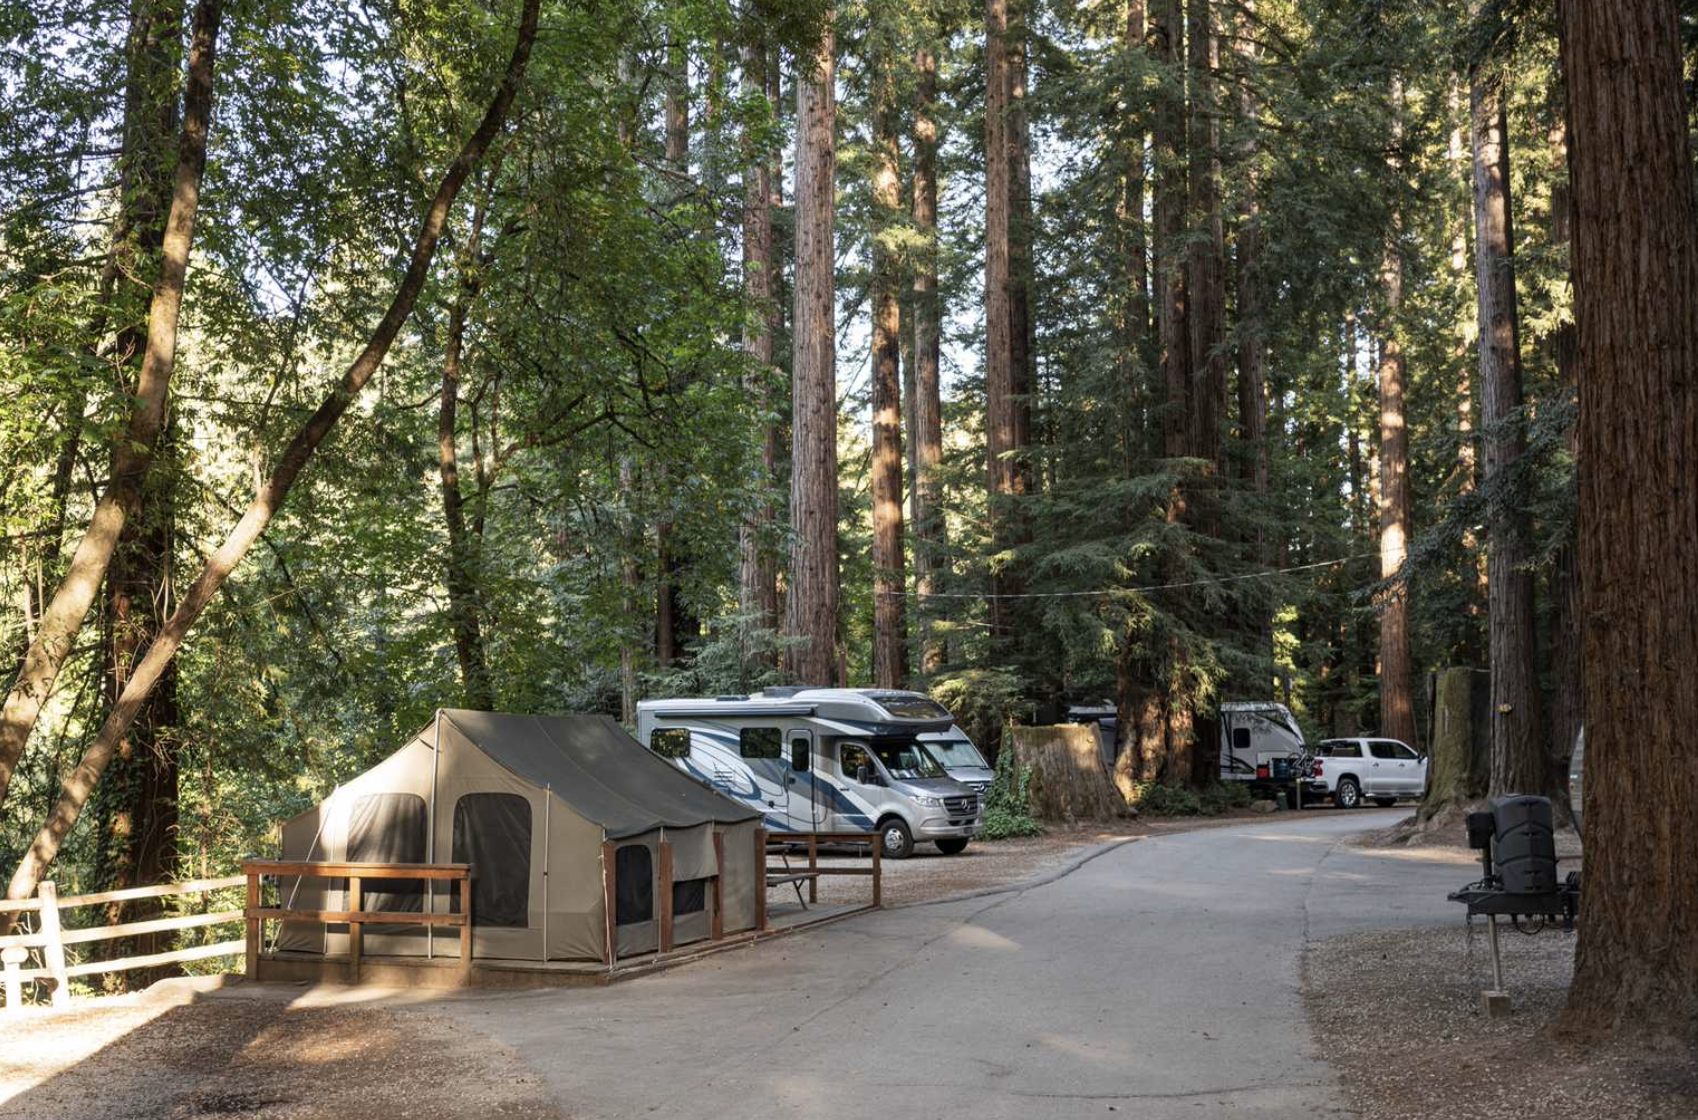 Tent and RVs parked amongst trees at Santa Cruz Campground